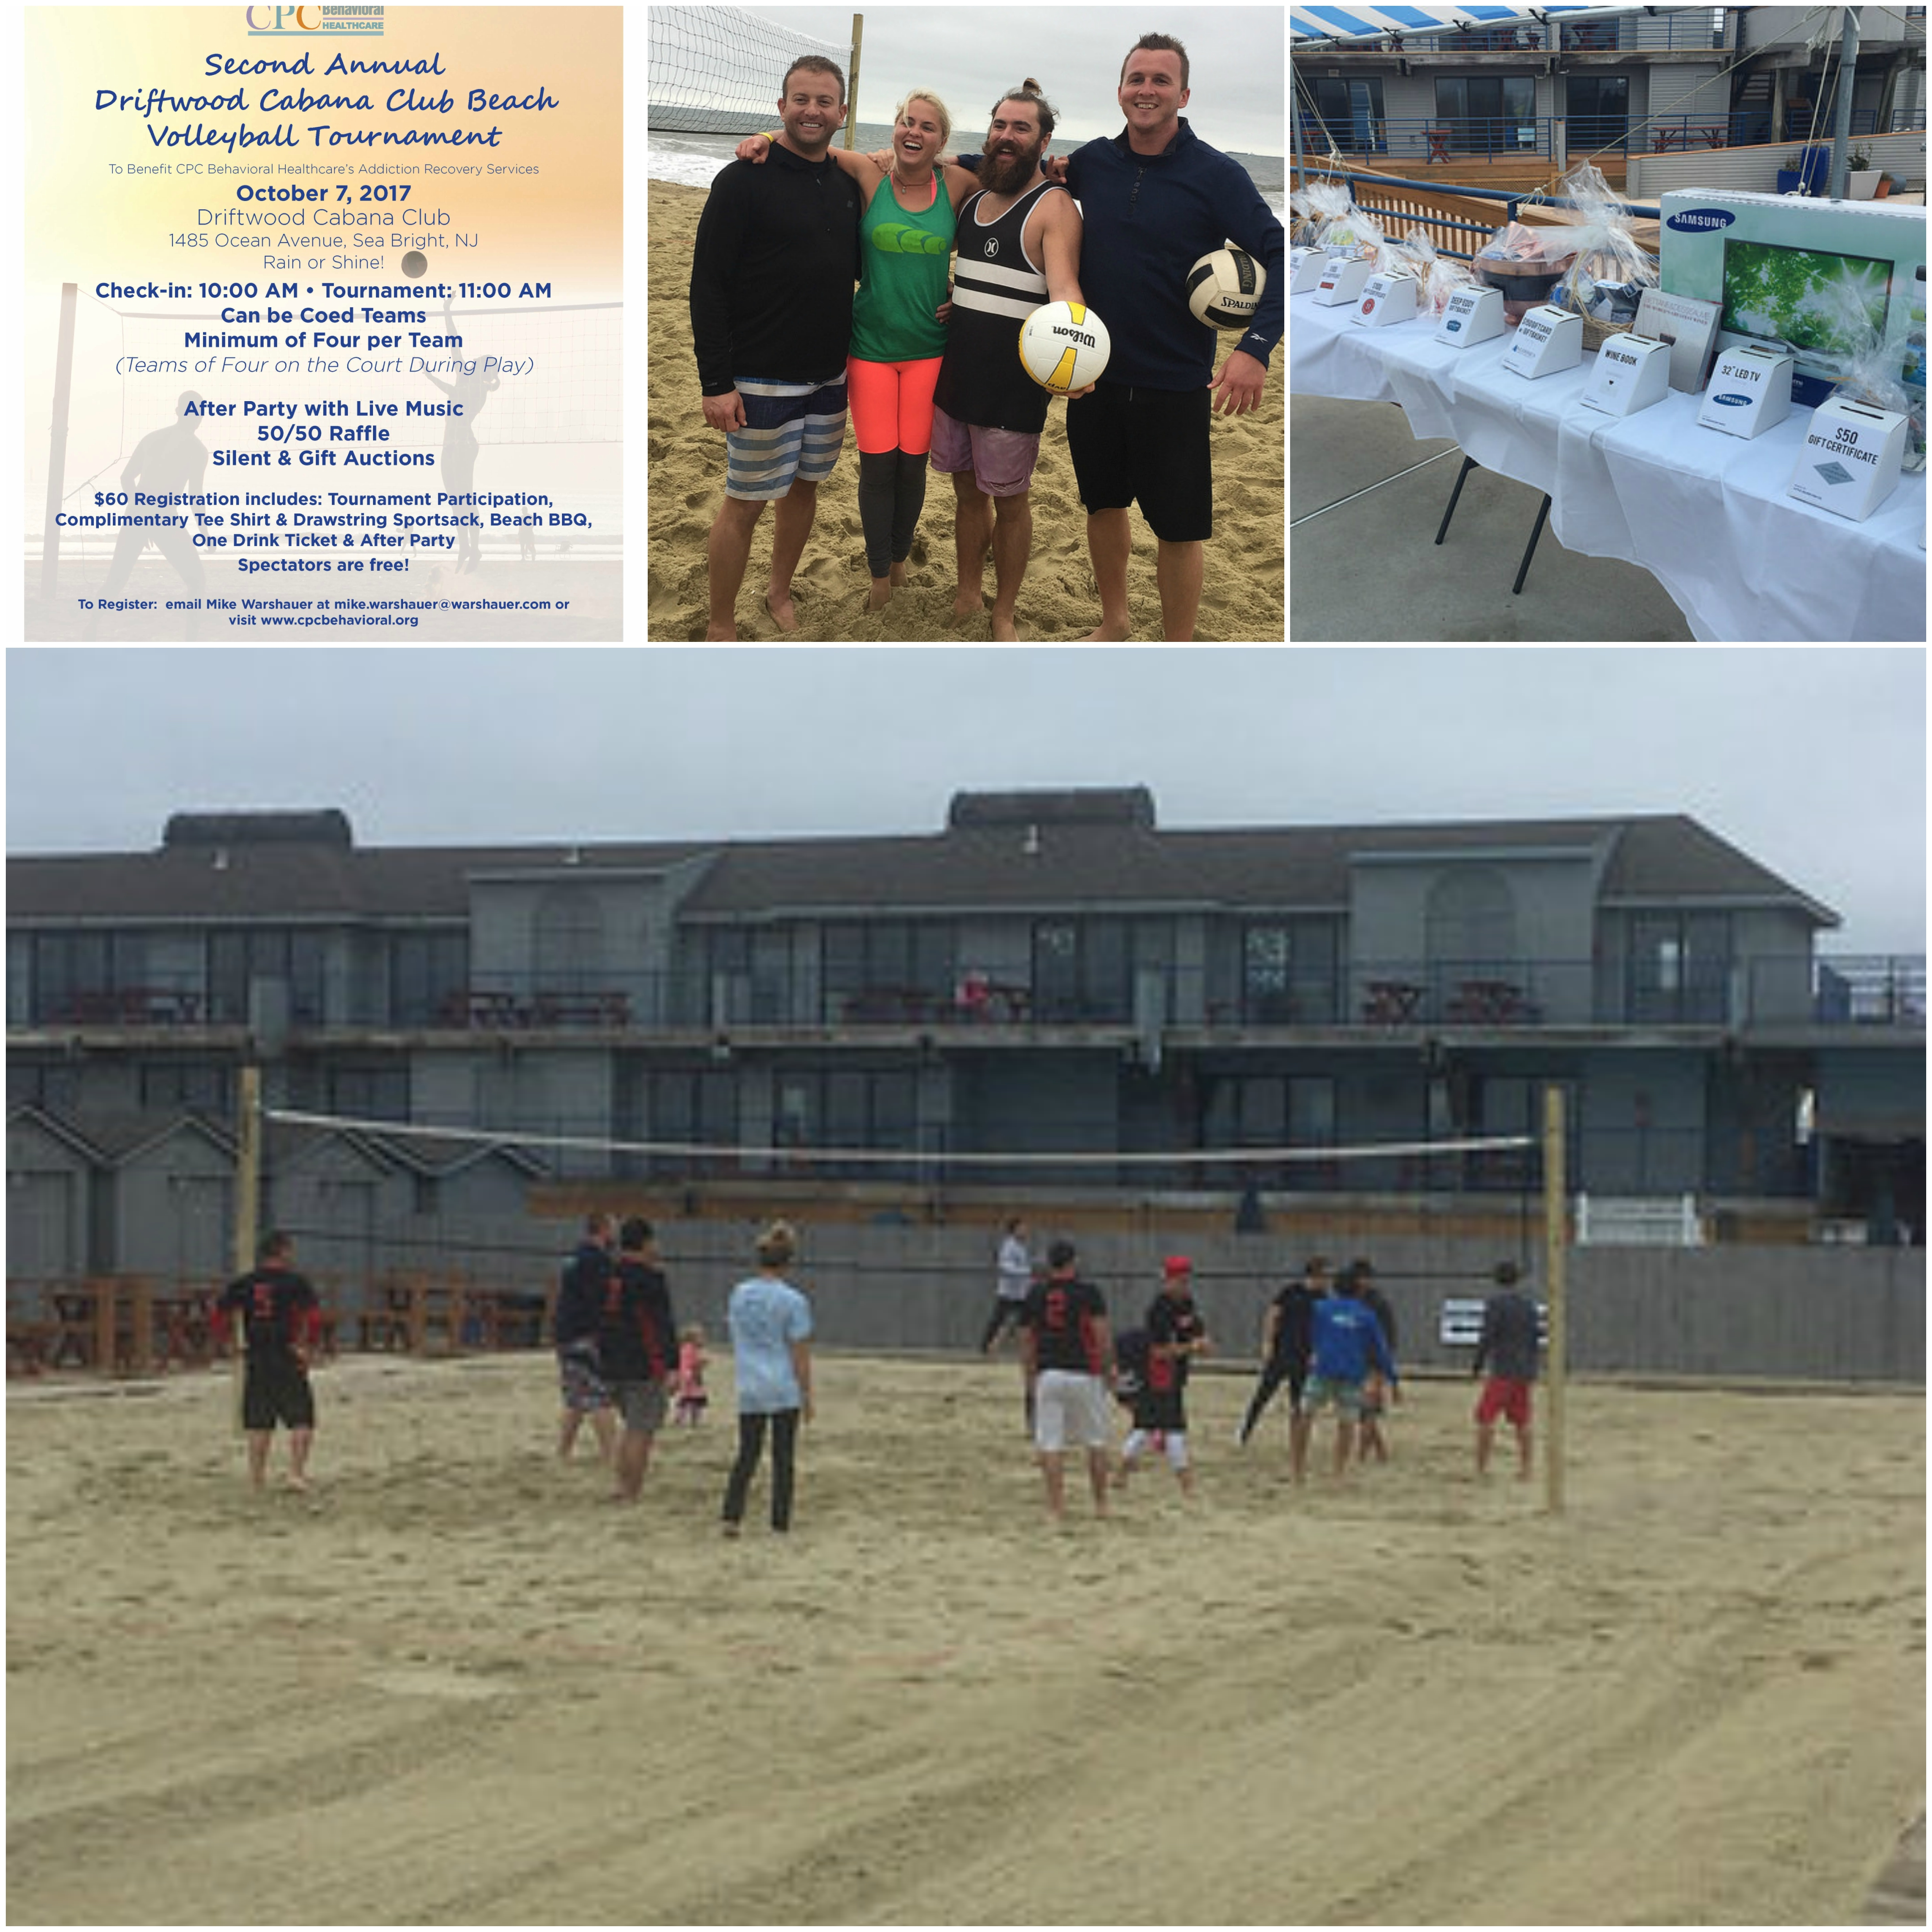 2nd Annual Driftwood Cabana Club Volleyball Tournament To Benefit Cpc Mental Health Addiction Treatment Special Education